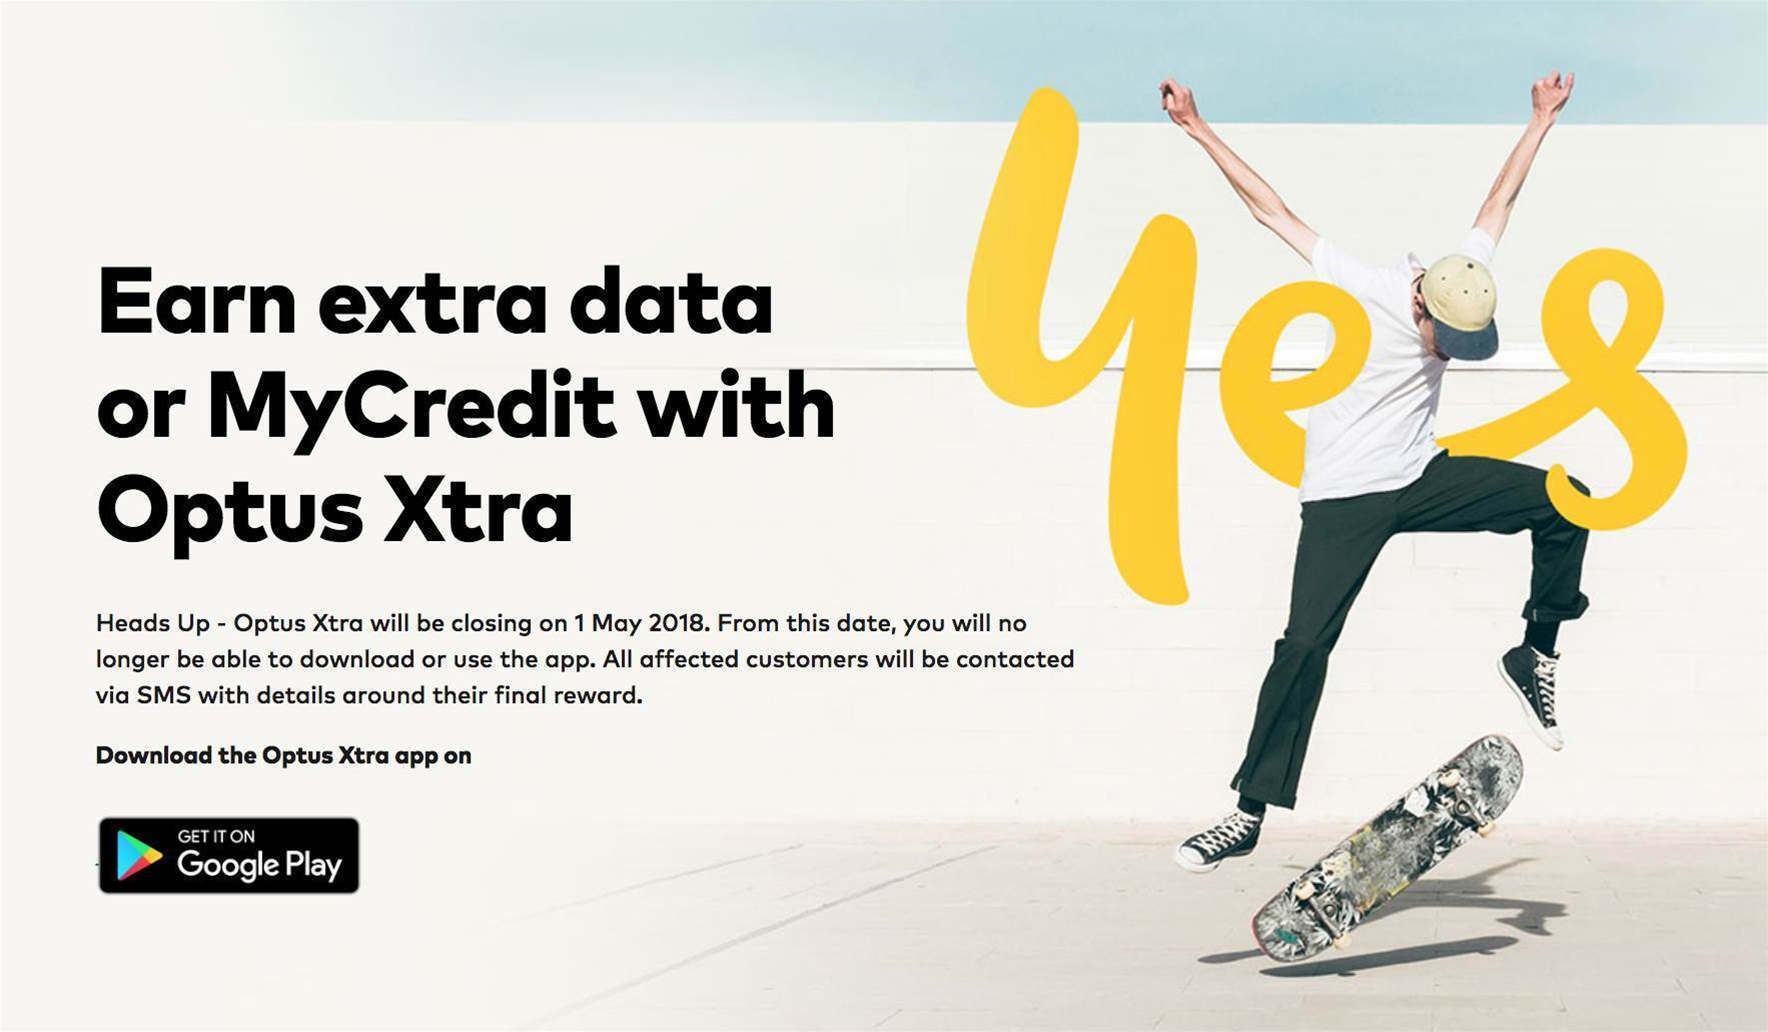 Optus to close its ad-supported mobile service